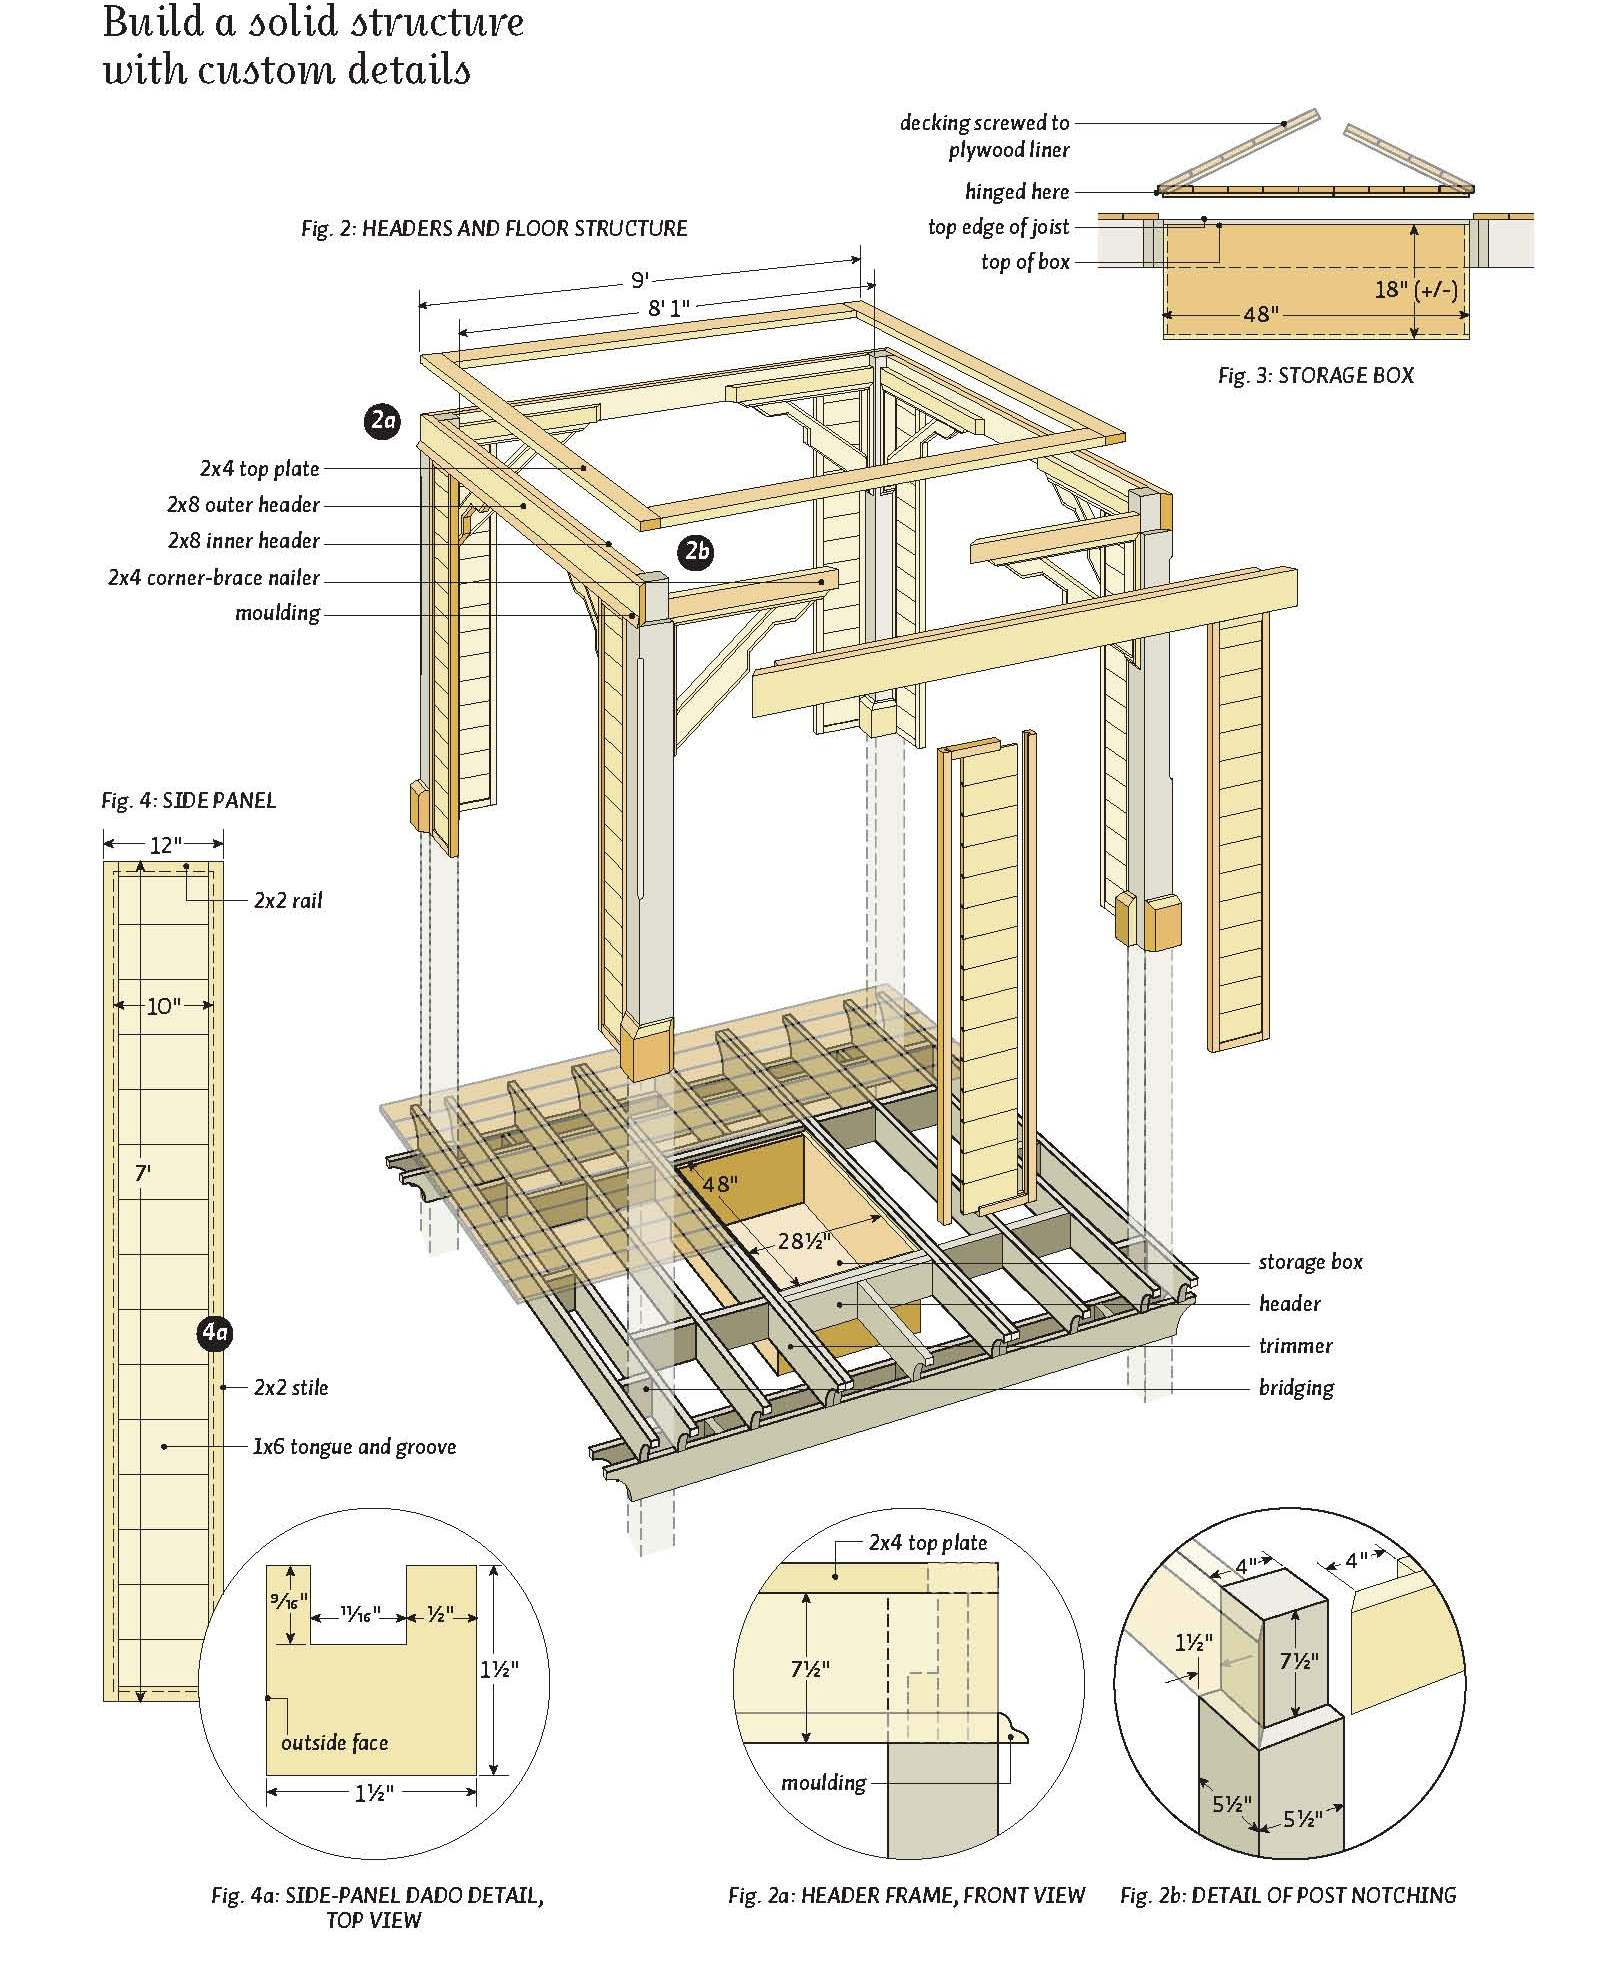 Guide free bed free woodworking plans and patterns diy simple woodworking - Build rectangular gazebo guide models ...